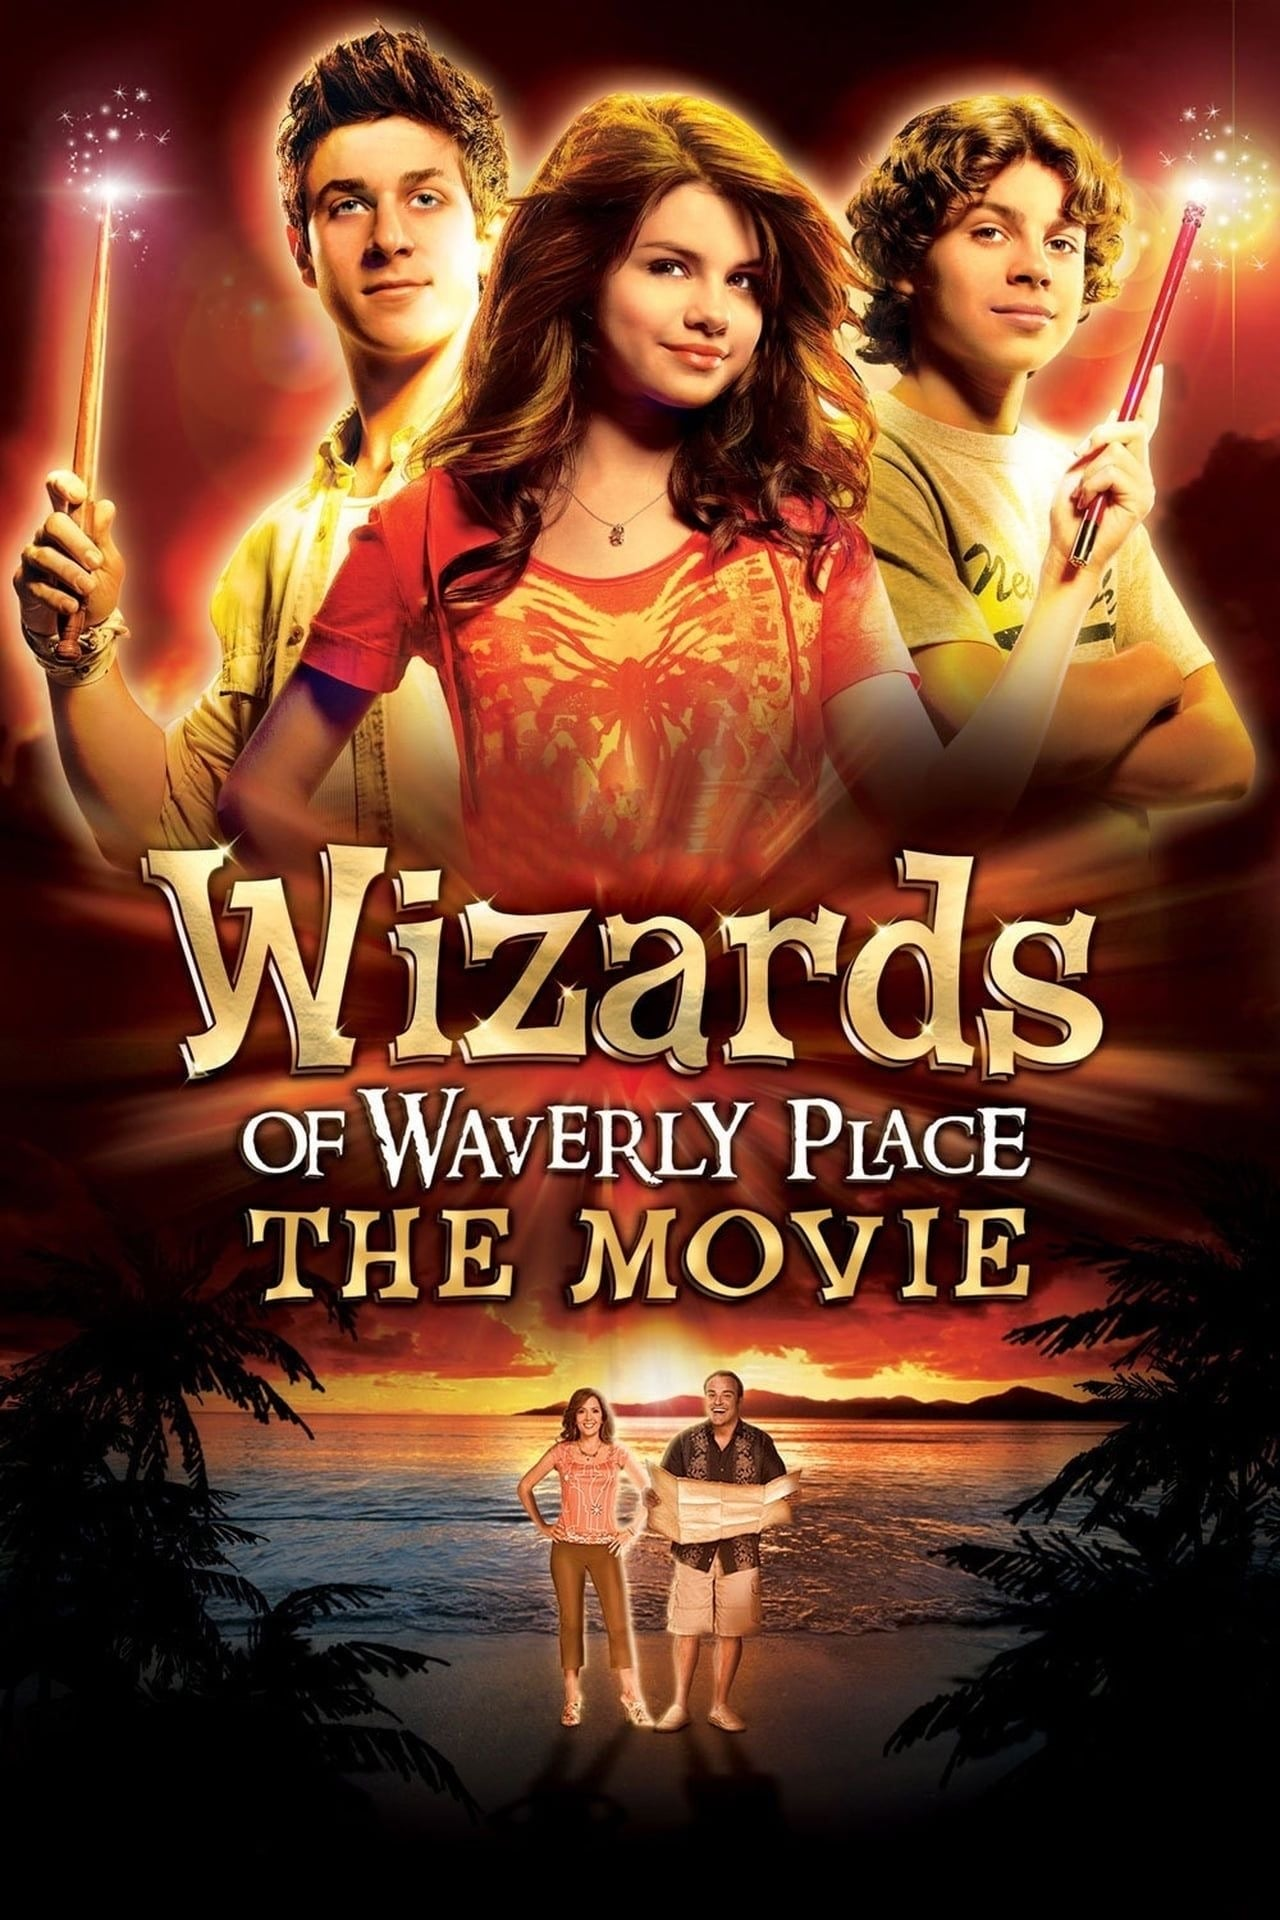 Watch Wizards of Waverly Place: The Movie Online